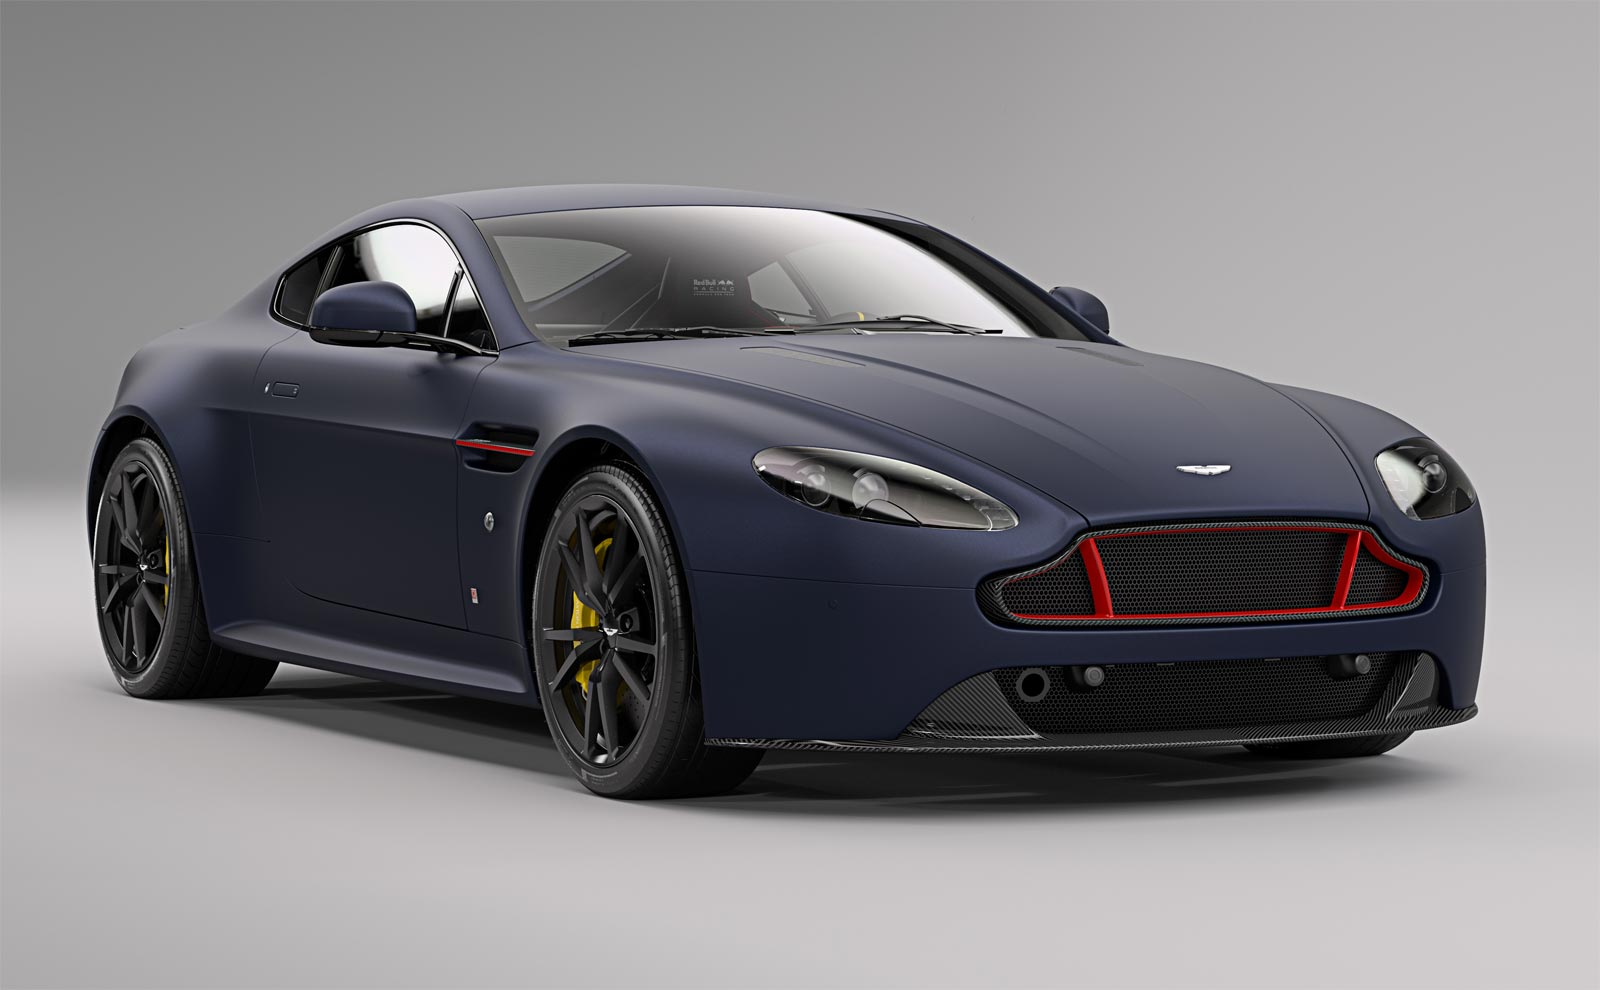 The Vantage S Red Bull Racing Editions From Aston Martin